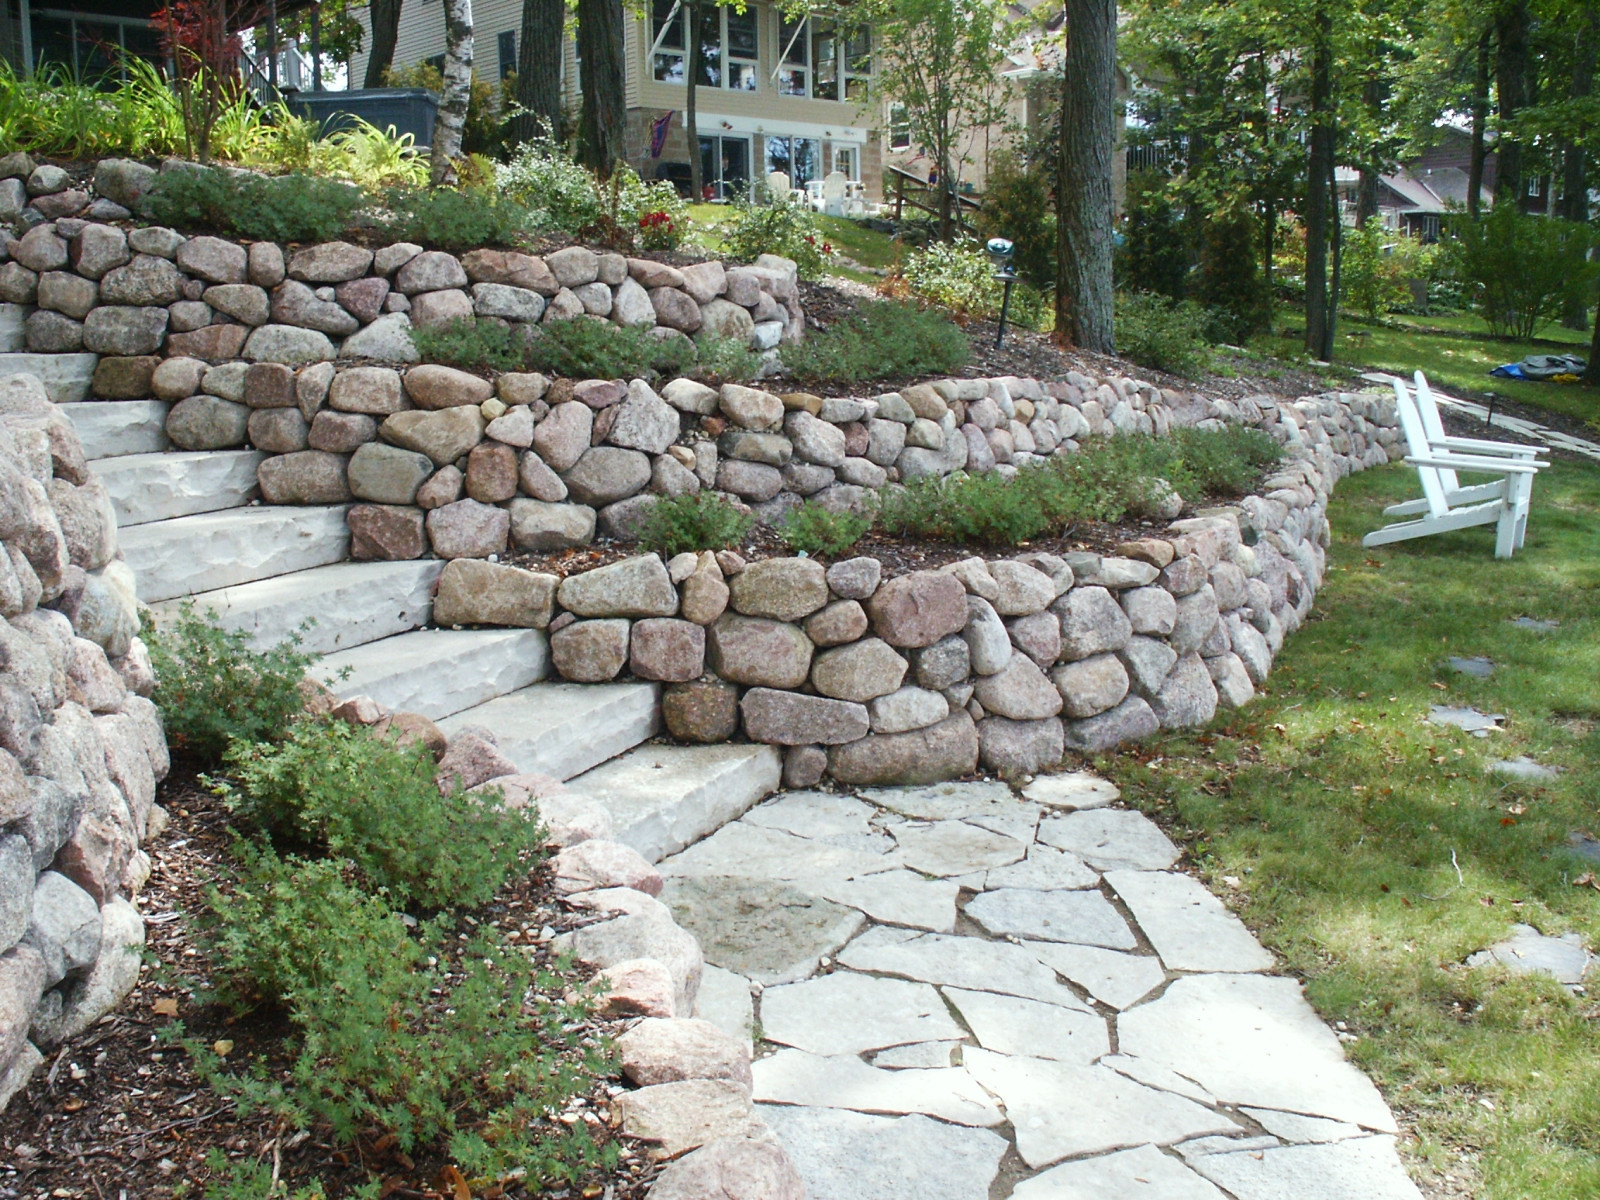 Terrace Landscape Retaining Wall Awesome Retaining Walls and Outcroppings Treetops Landscape